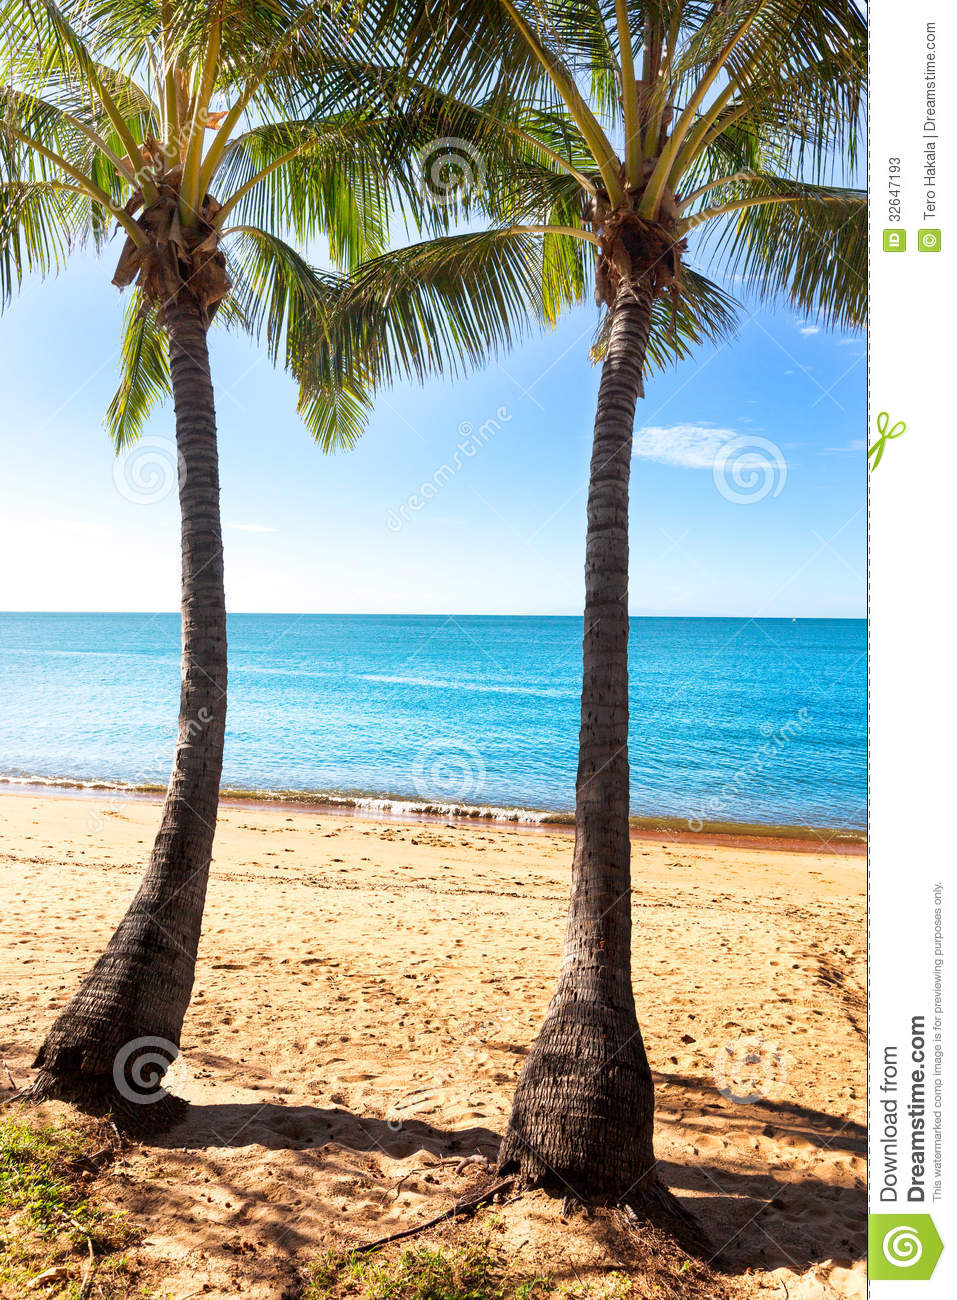 Two Palm Trees On Tropical Beach Stock Image